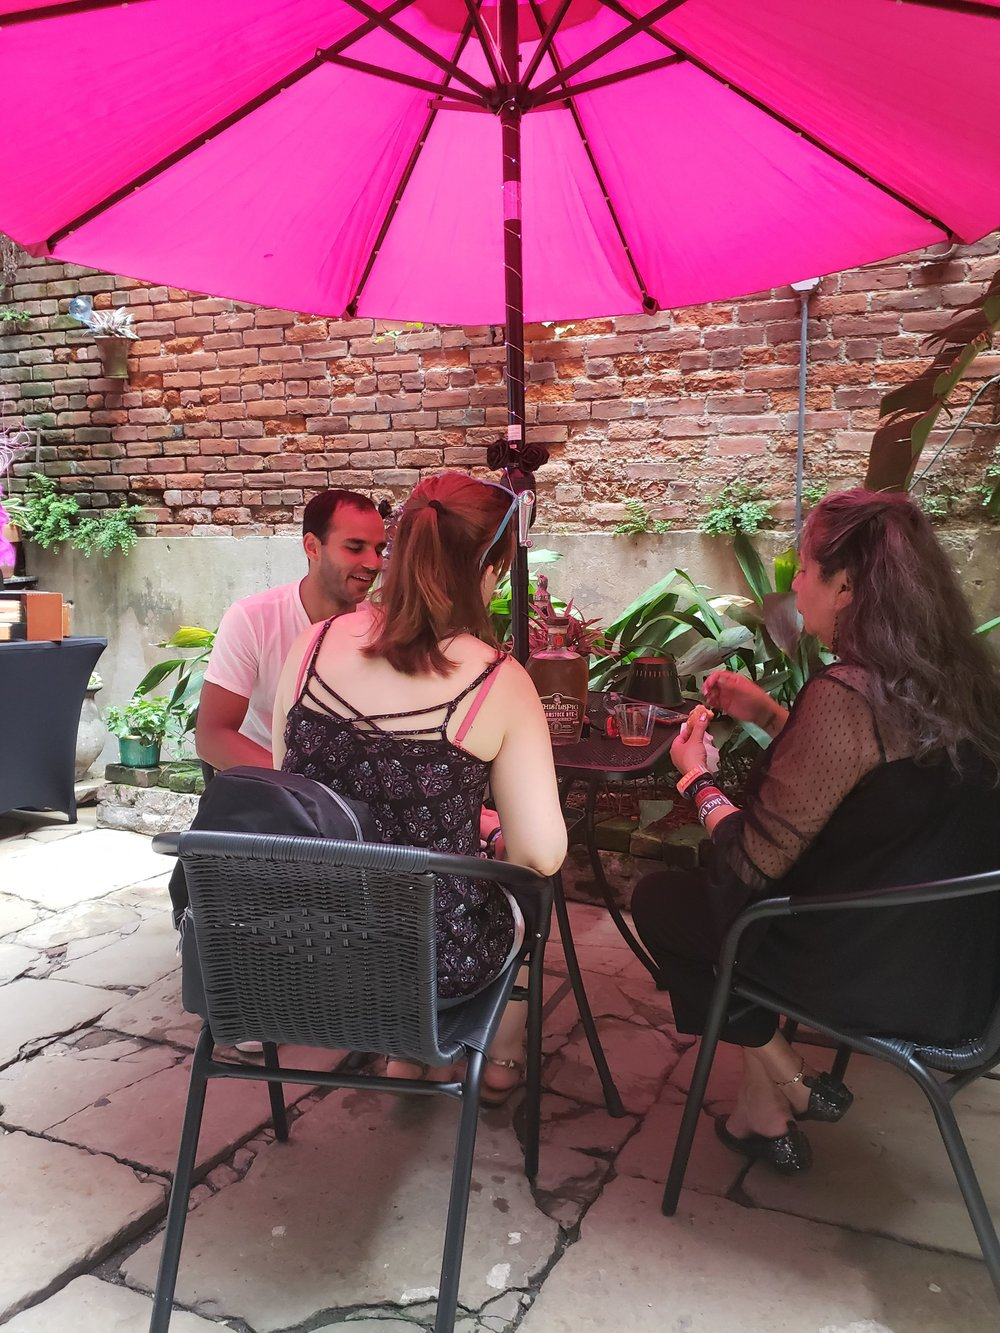 Daniel Kahn entertaining two guests to the WhistlePig courtyard